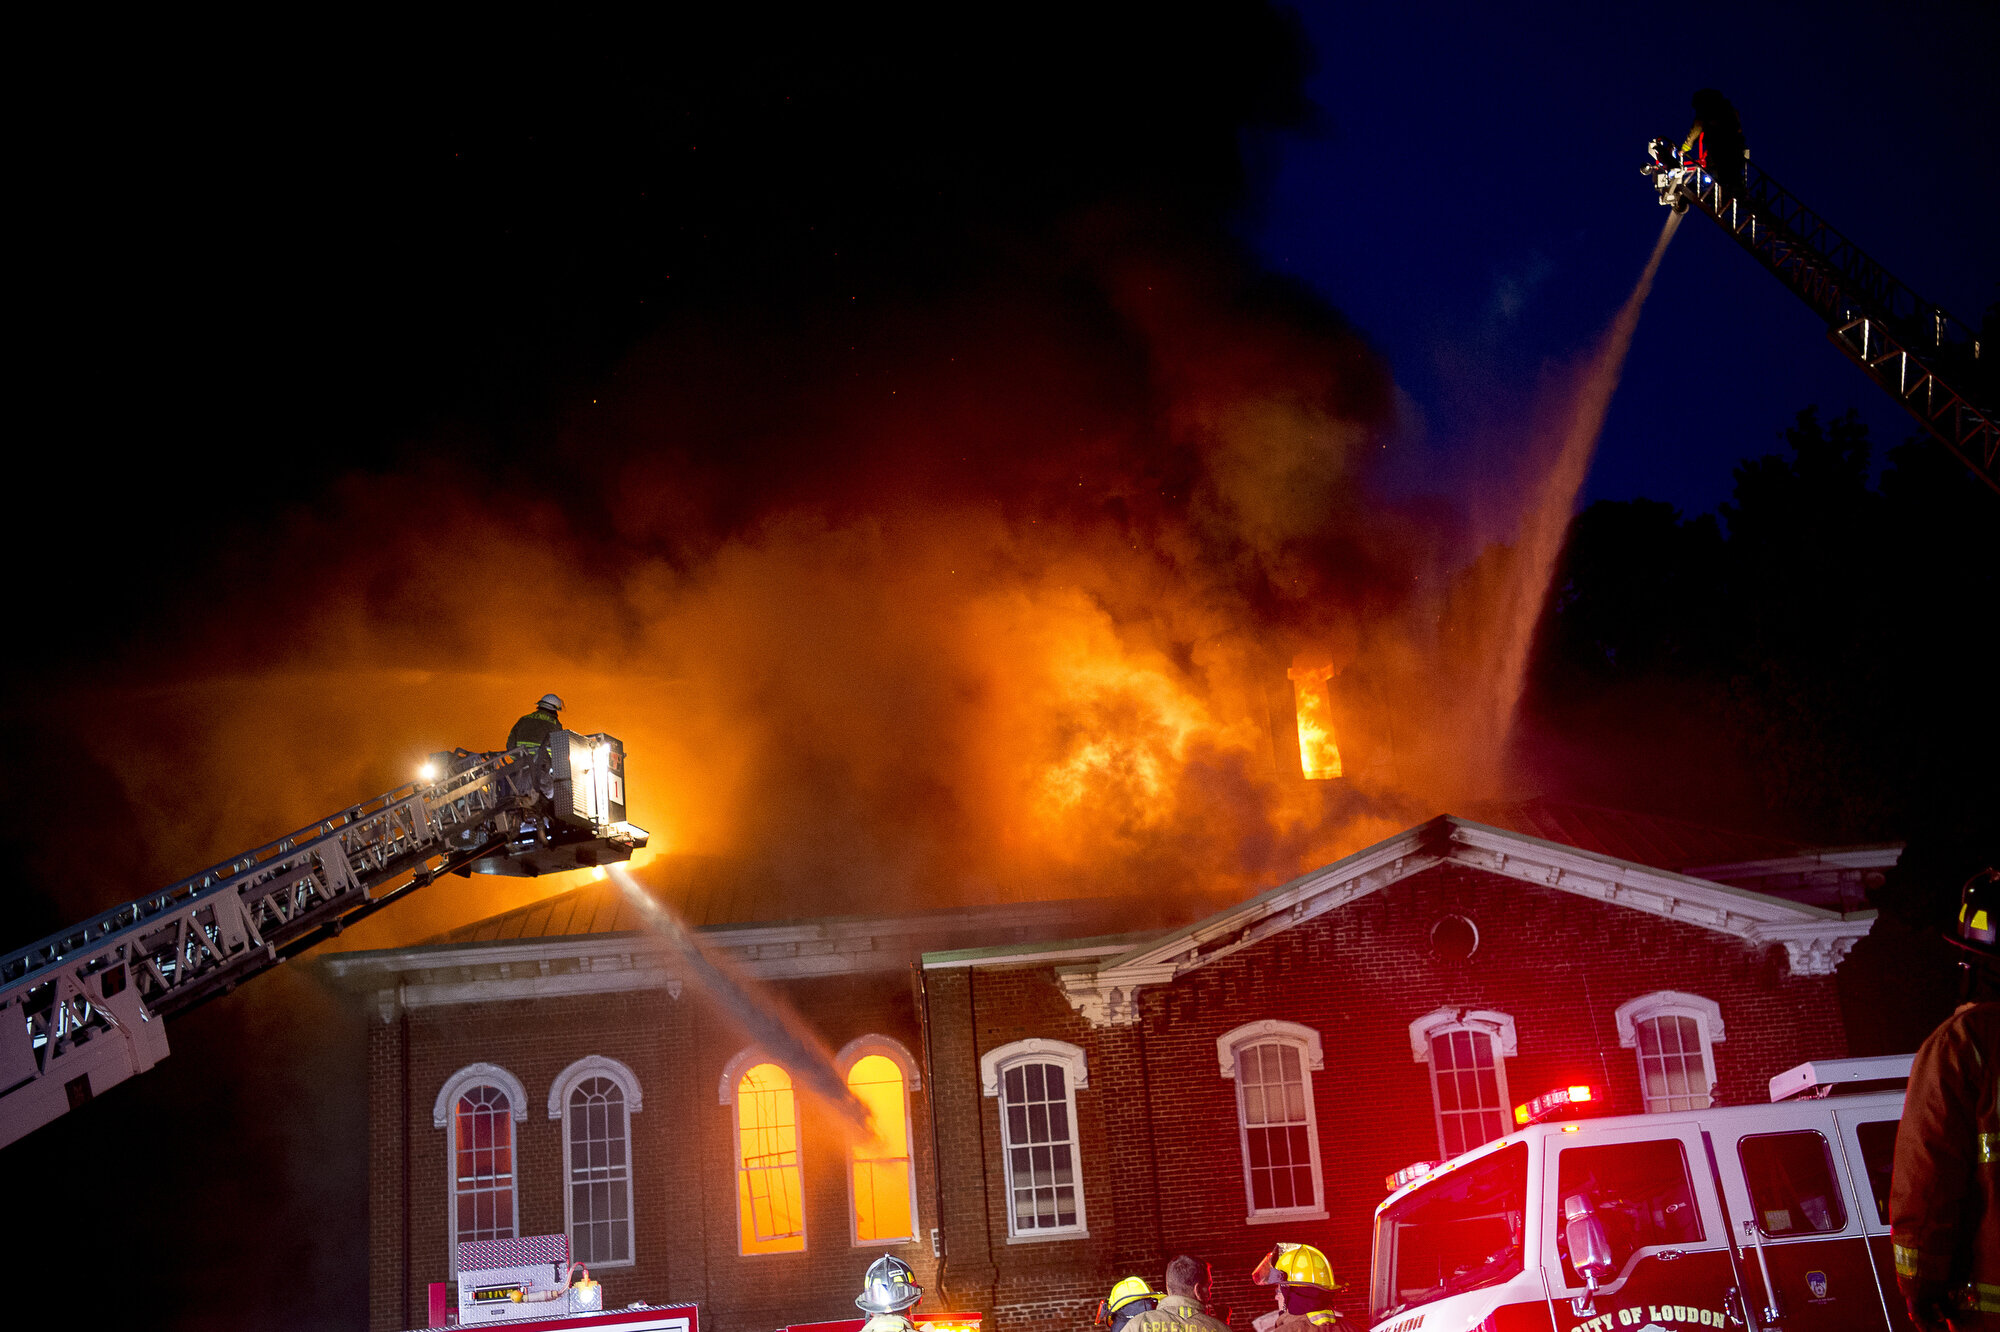 Firefighters douse the flames with water from ladder trucks at a fire at the Loudon County Courthouse in Loudon, Tennessee on Tuesday, April 23, 2019. The building, which was built in the 1870's and listed on the National Register of Historic Places, was consumed almost entirely by flames Tuesday evening.